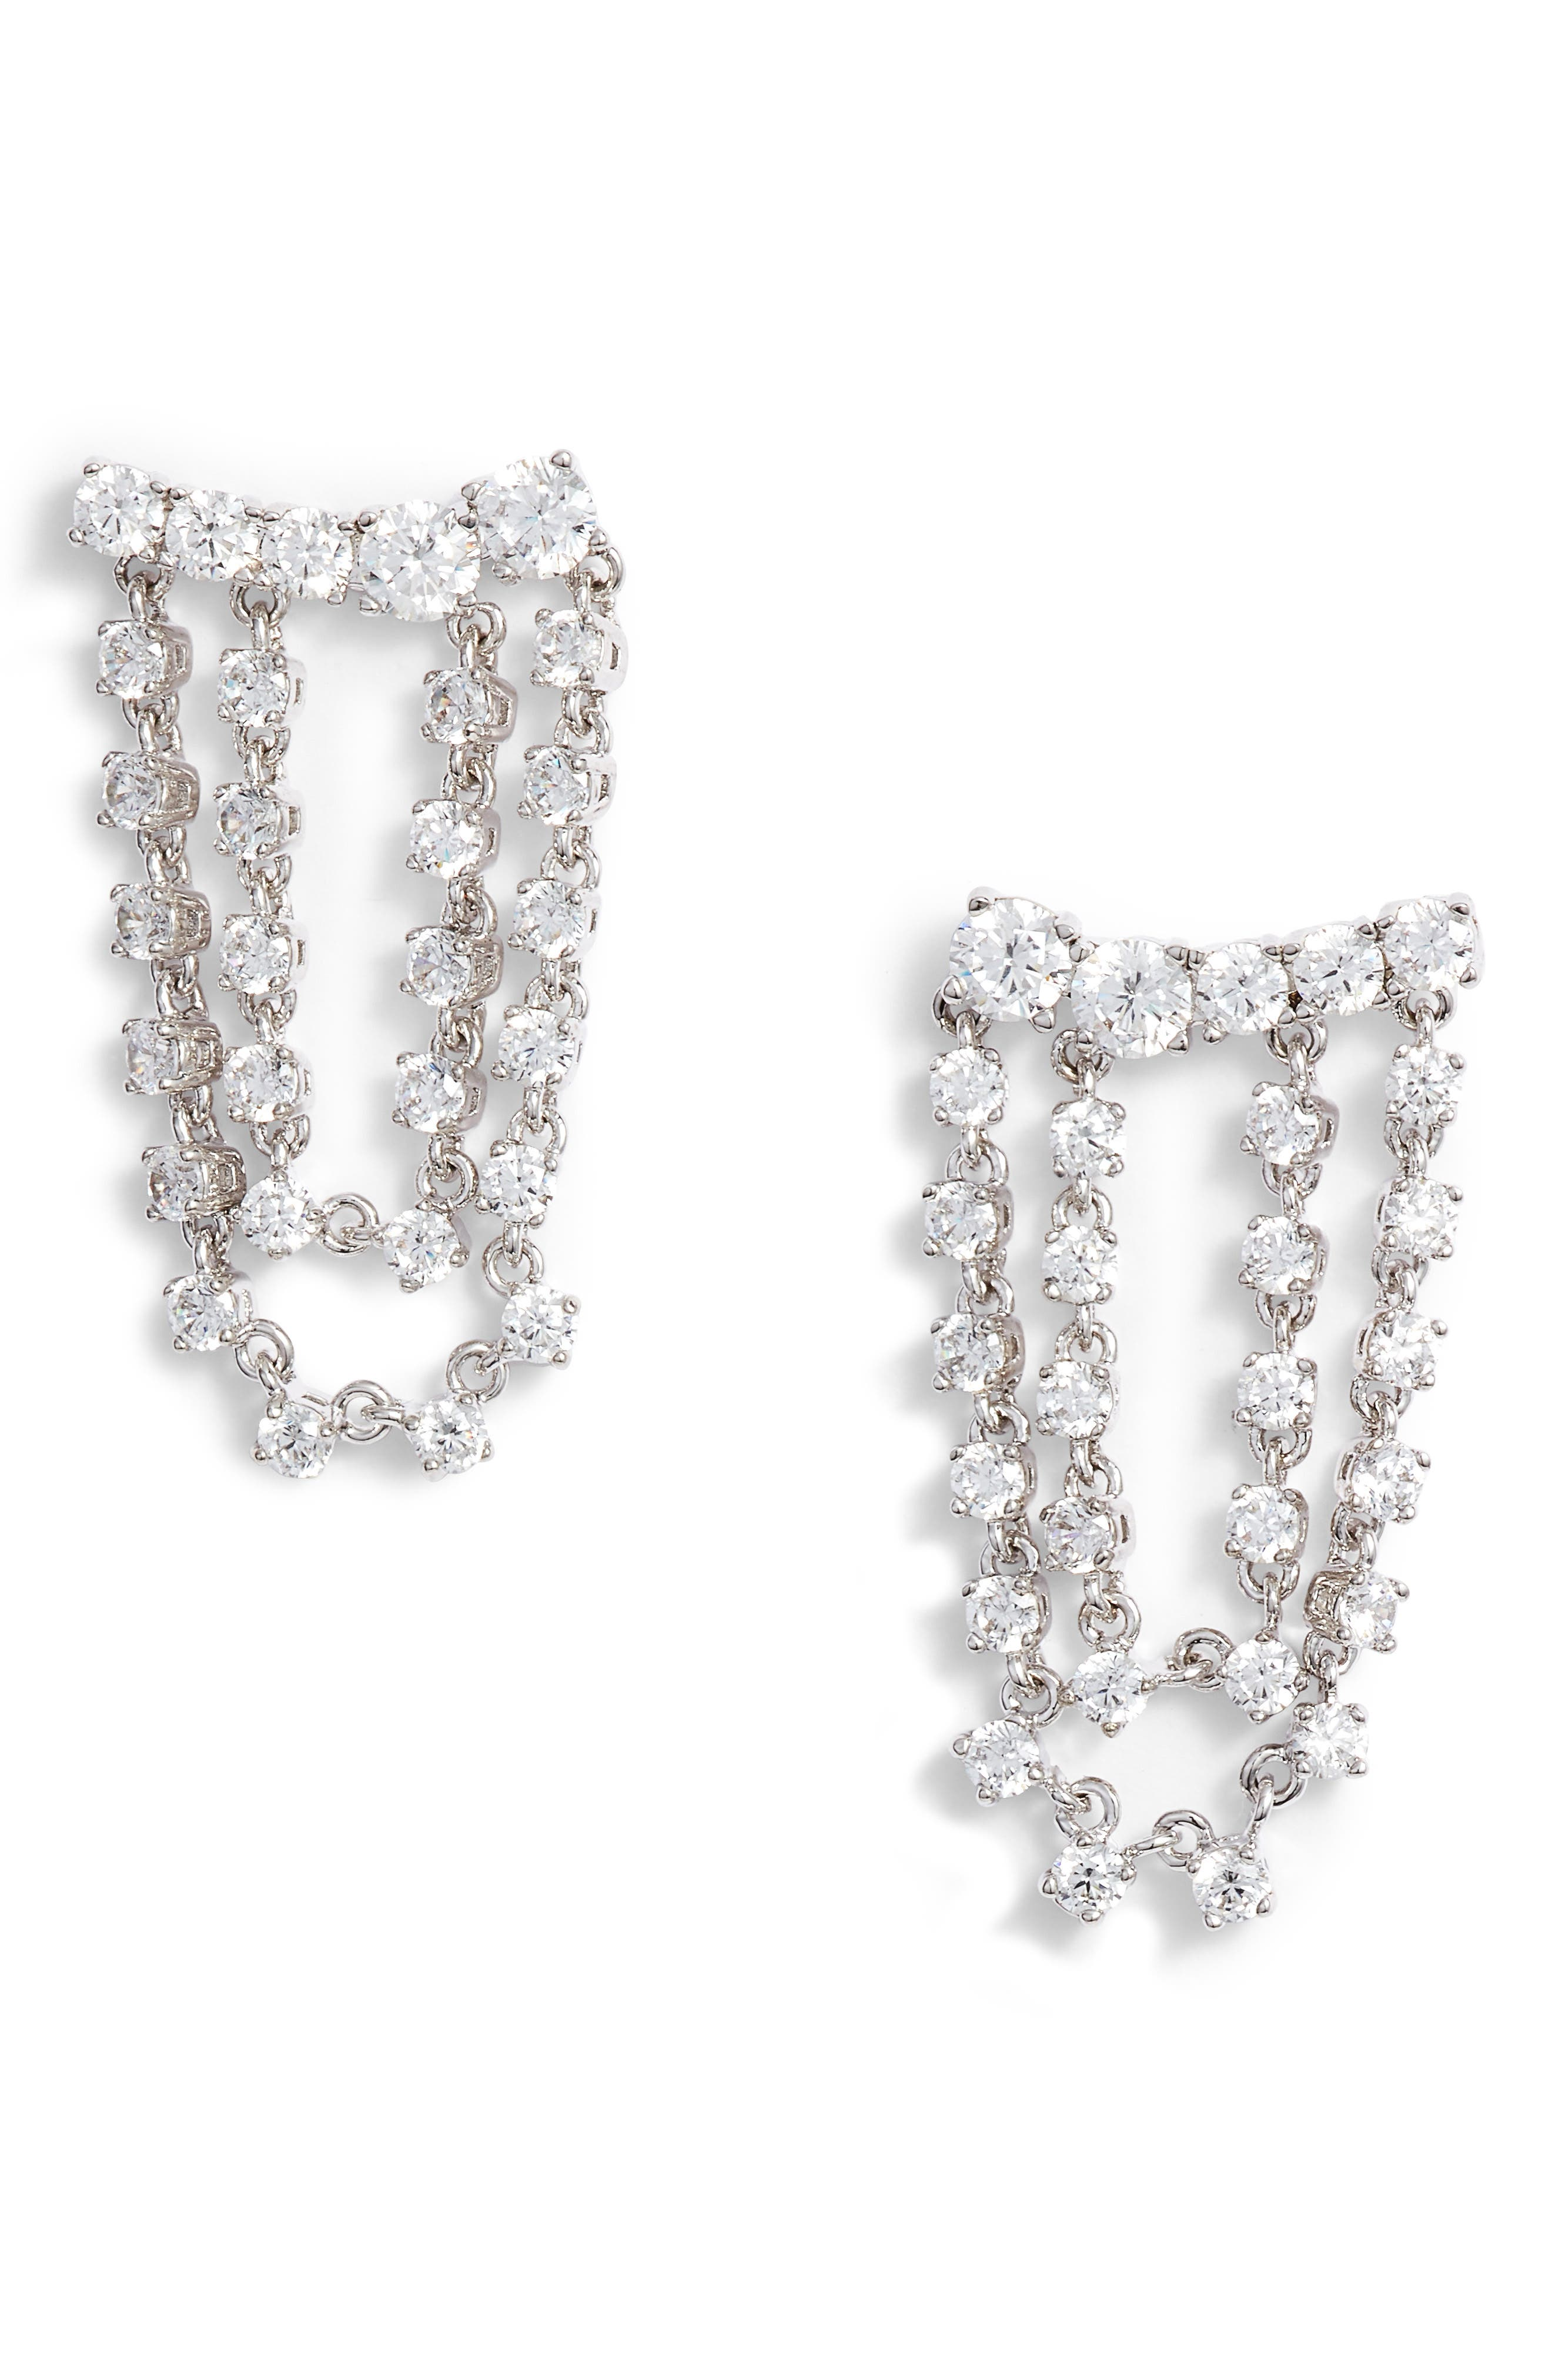 Draped Cubic Zirconia Earrings,                             Main thumbnail 1, color,                             CLEAR- SILVER